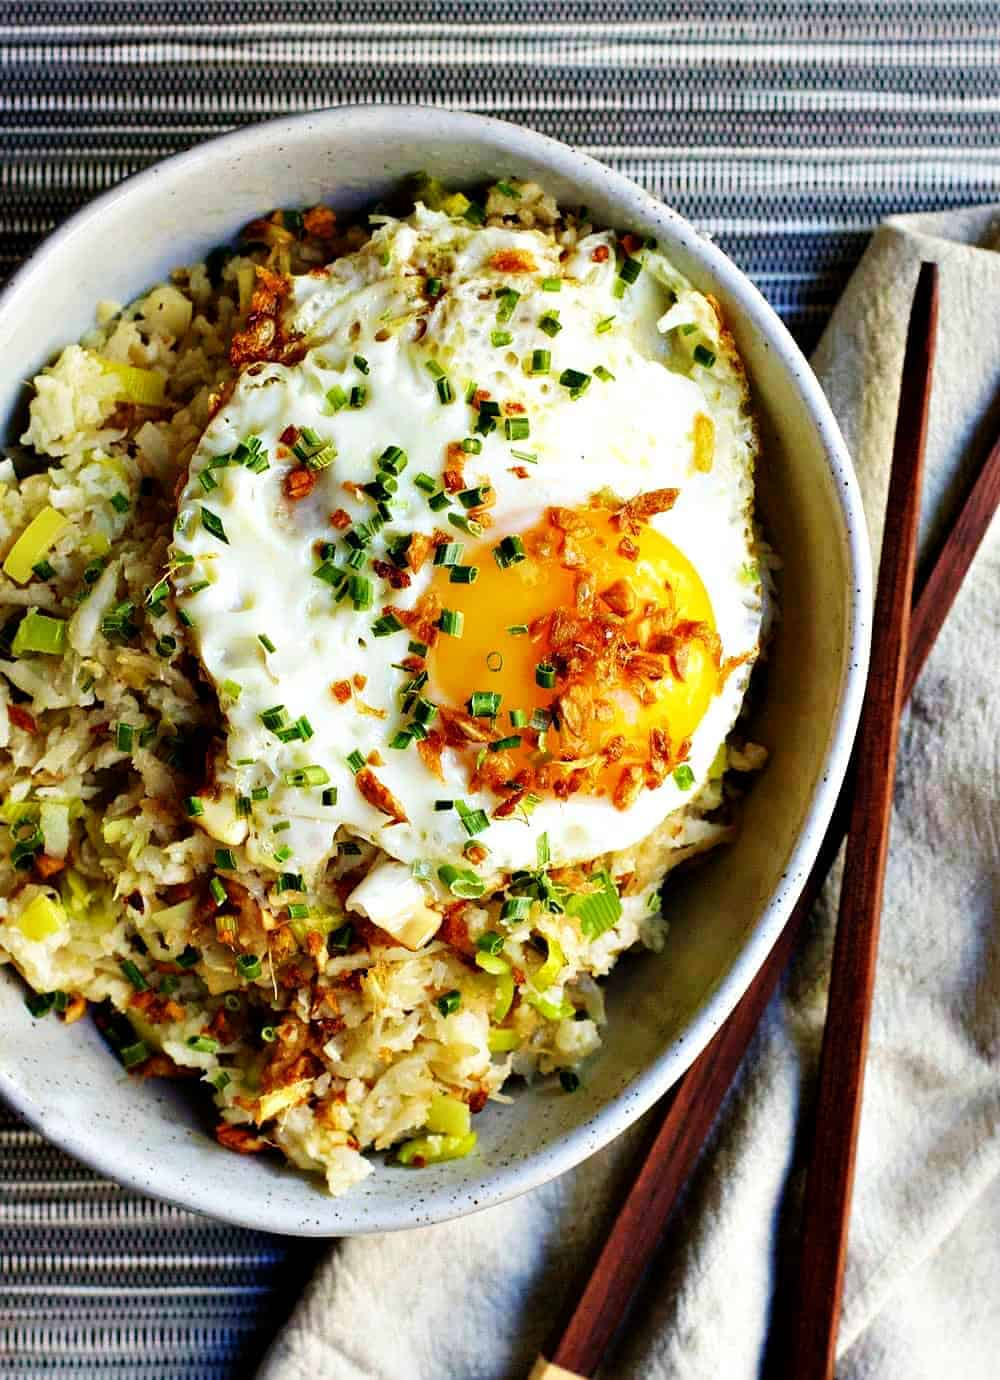 Cauliflower Fried Rice served with Chopsticks and Napkin